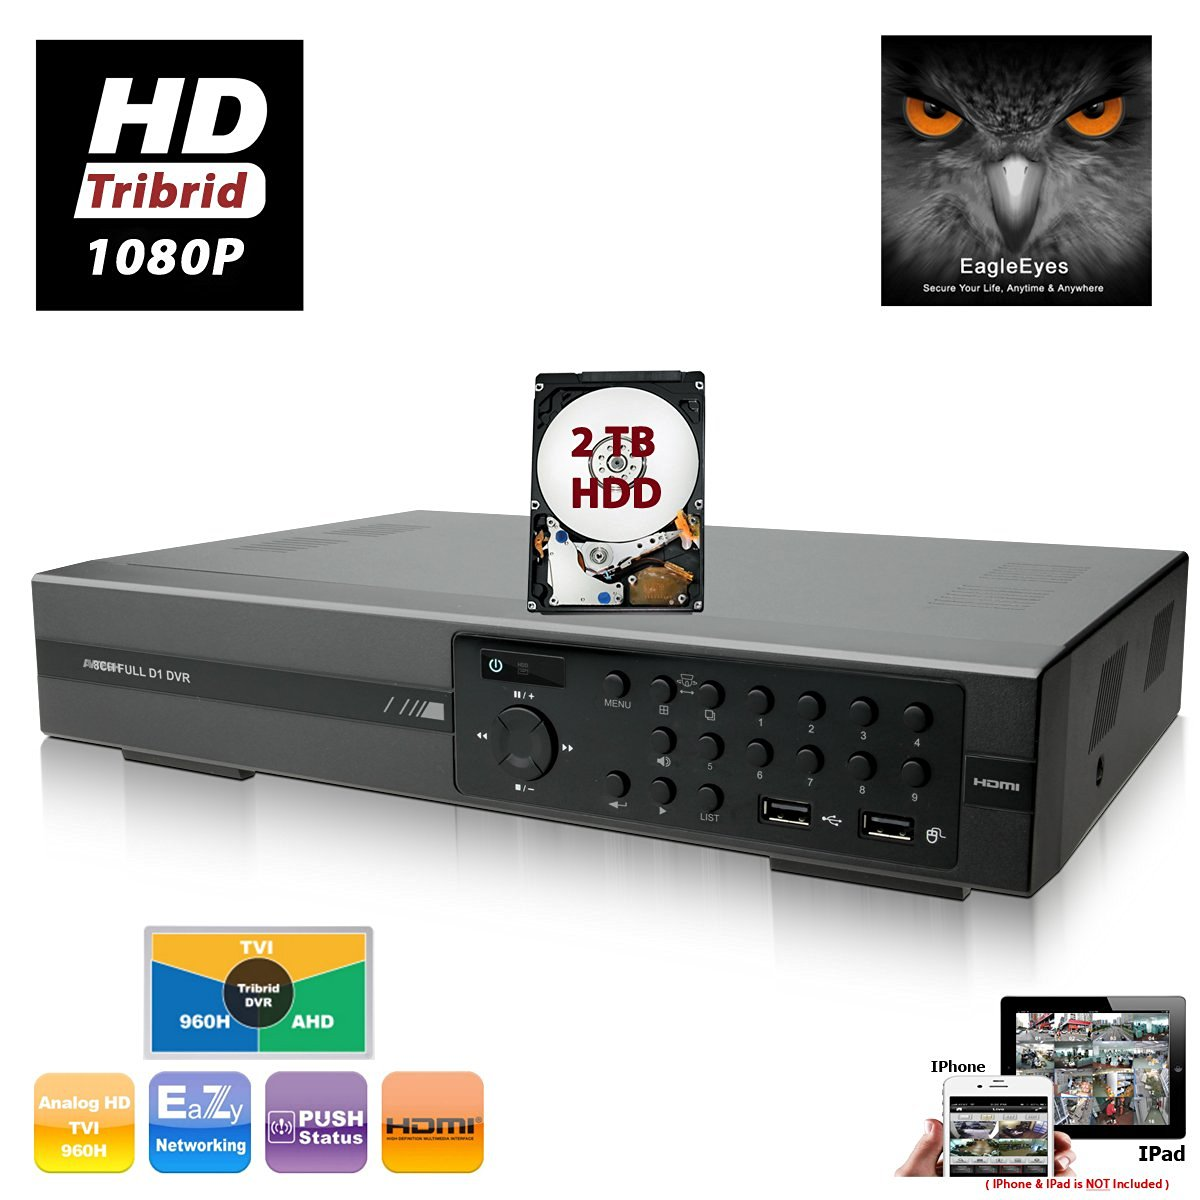 EVERTECH AVTECH 8 Channel Tribrid H.264 HD CCTV 1080P TVI + AHD + Analog Security Digital Video Recorder with Cloud Support Digital DVR for Easy Mobile Phone Access & Monitoring w/2TB